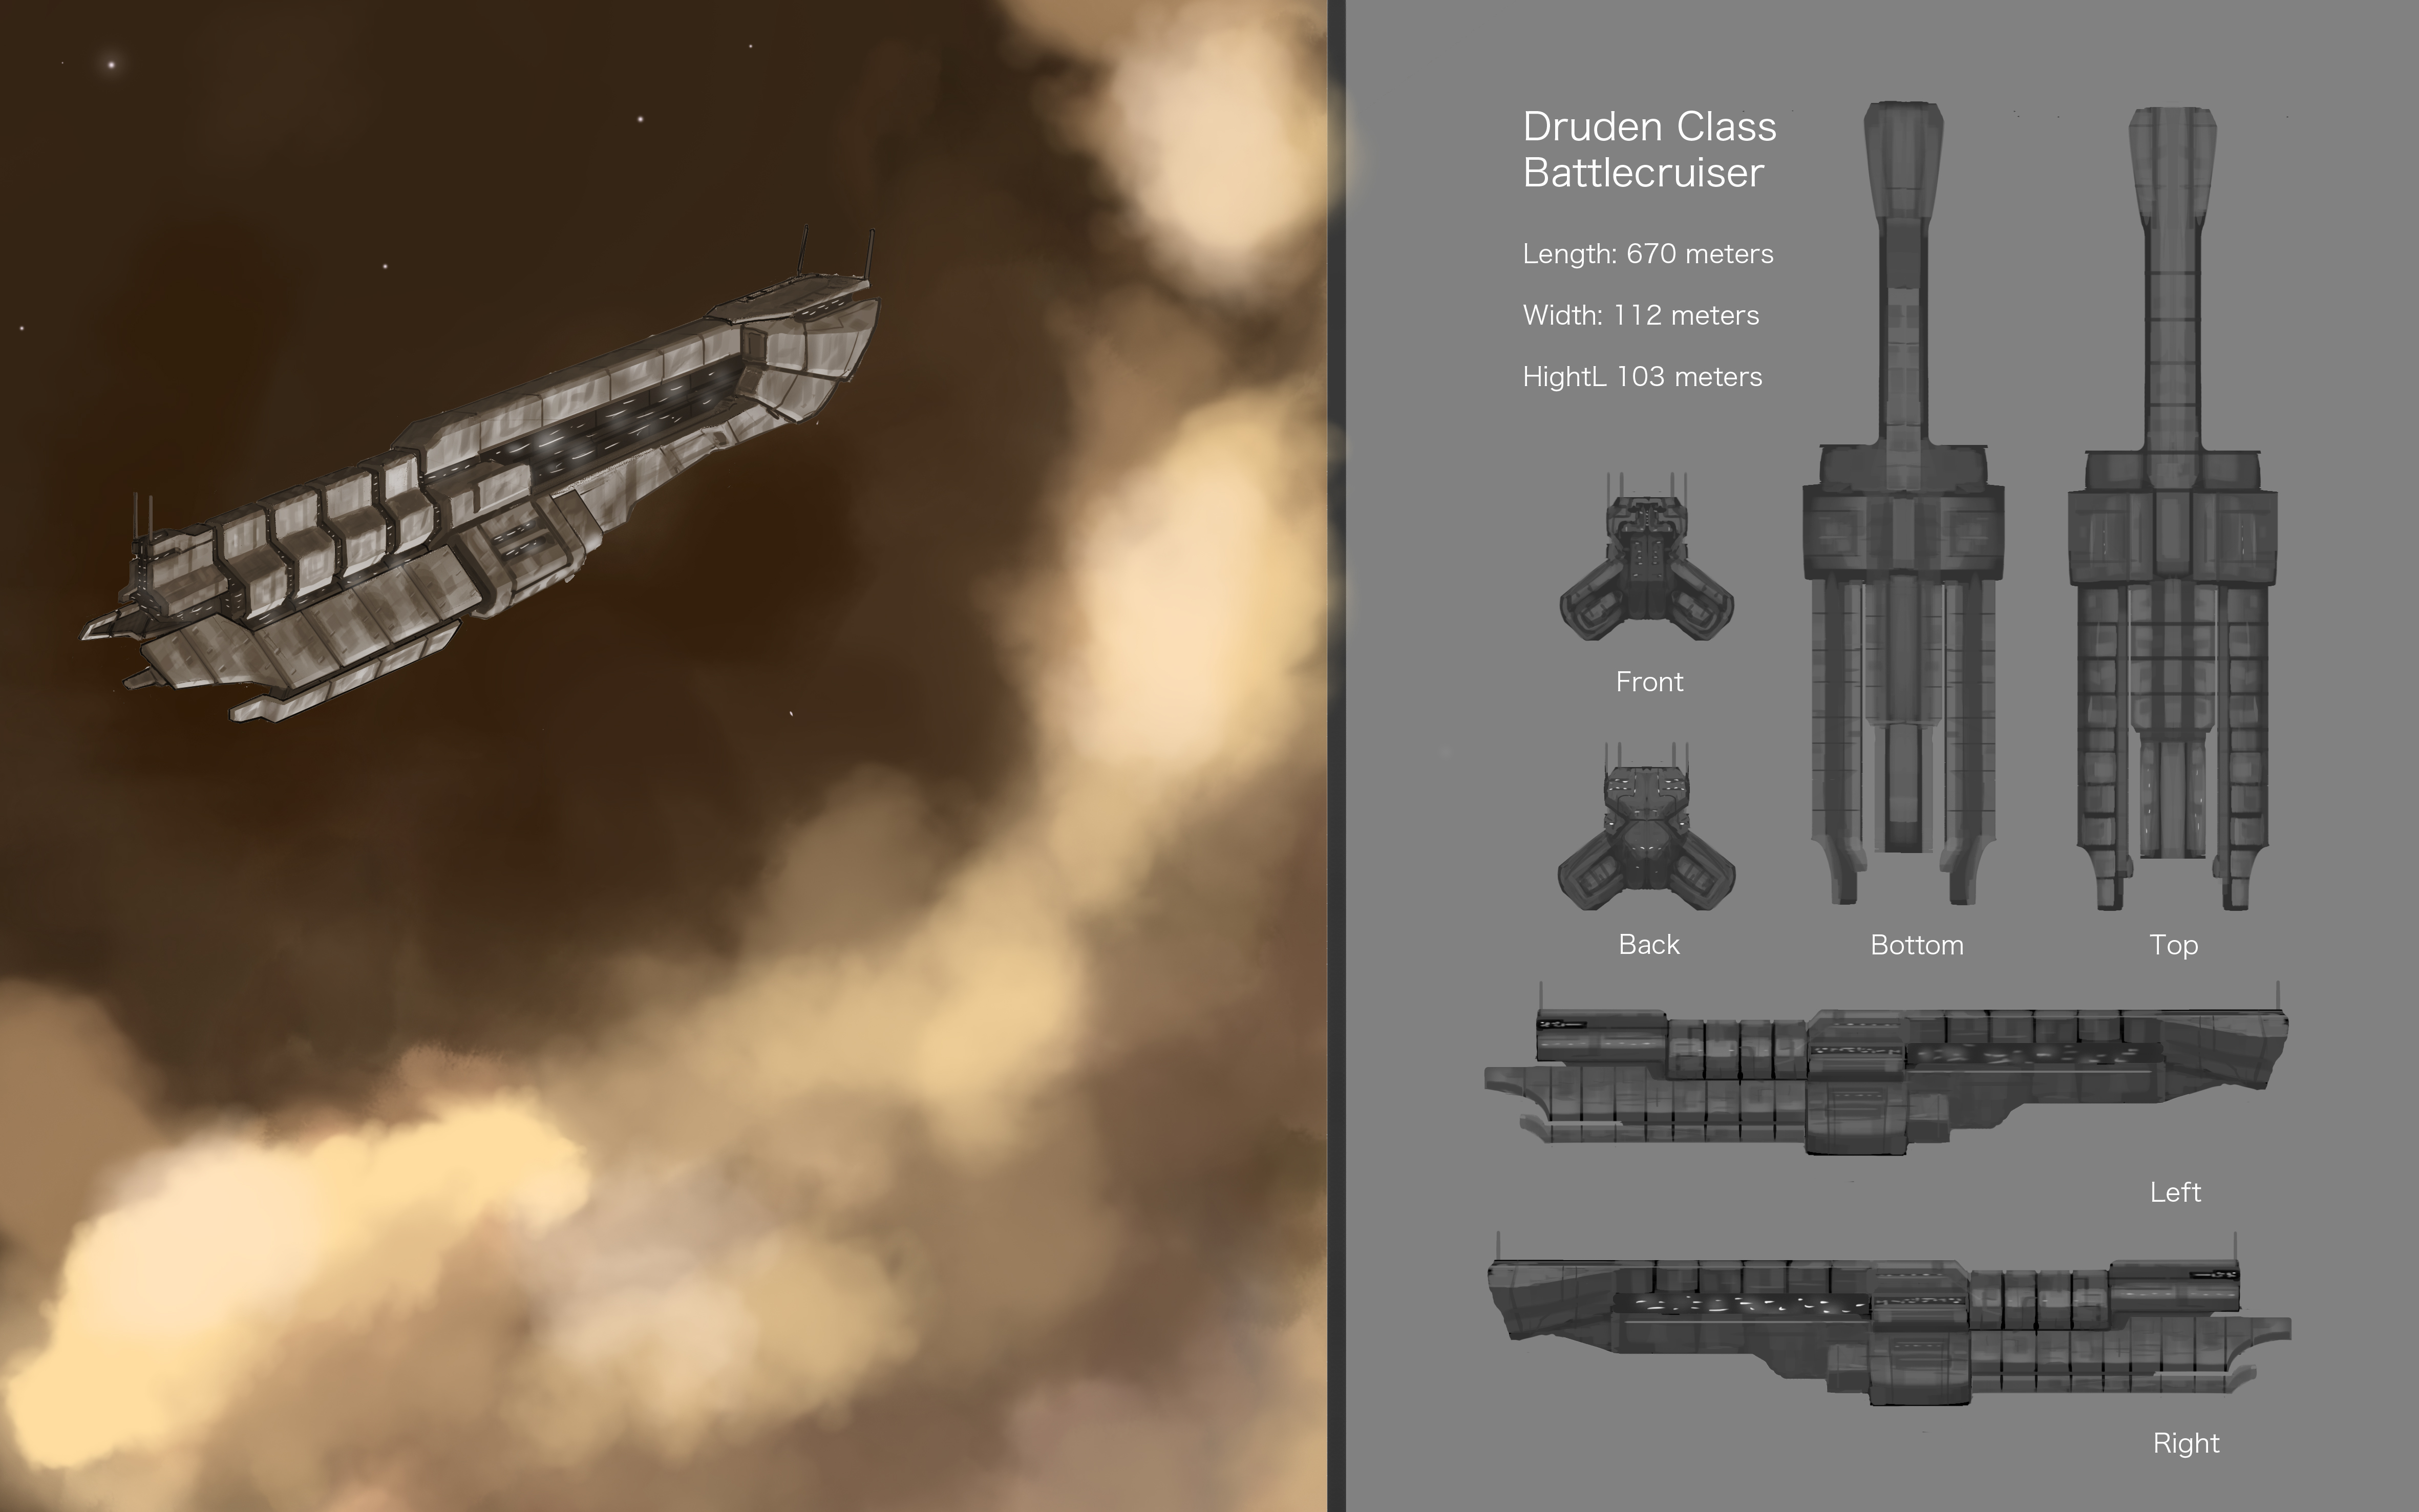 Druden Class Battlecruiser by ModalMechanica